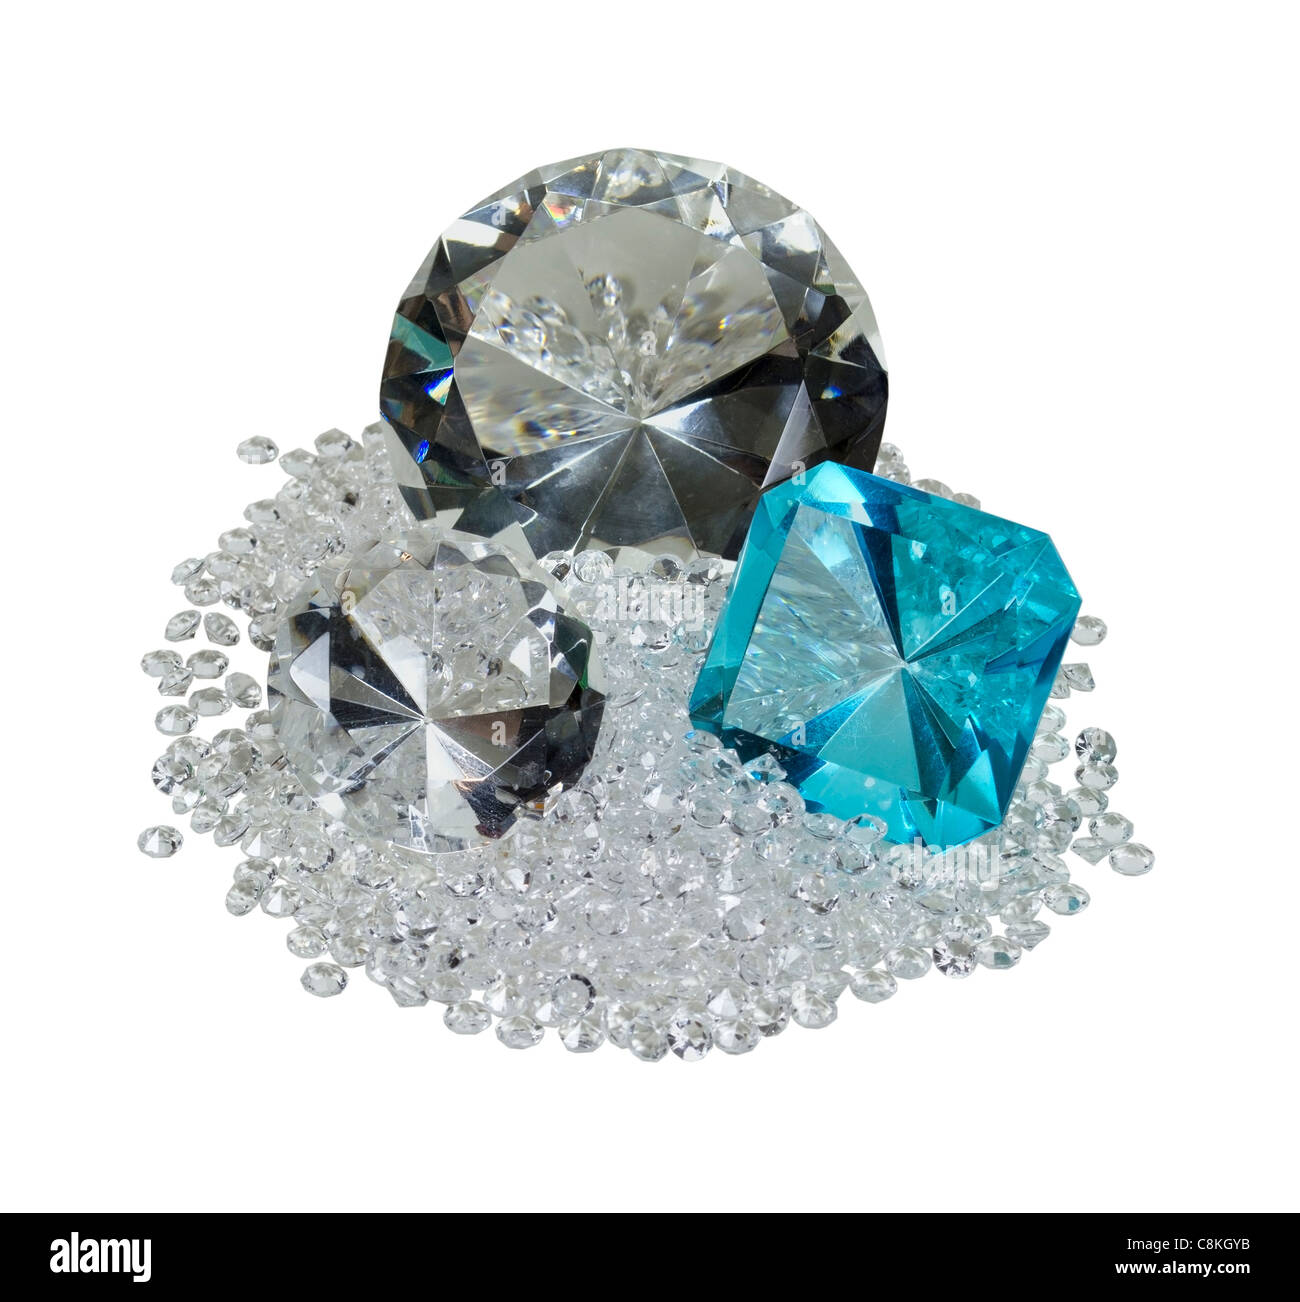 Large and small diamonds and gem with facets that sparkle brightly in the light - path included - Stock Image